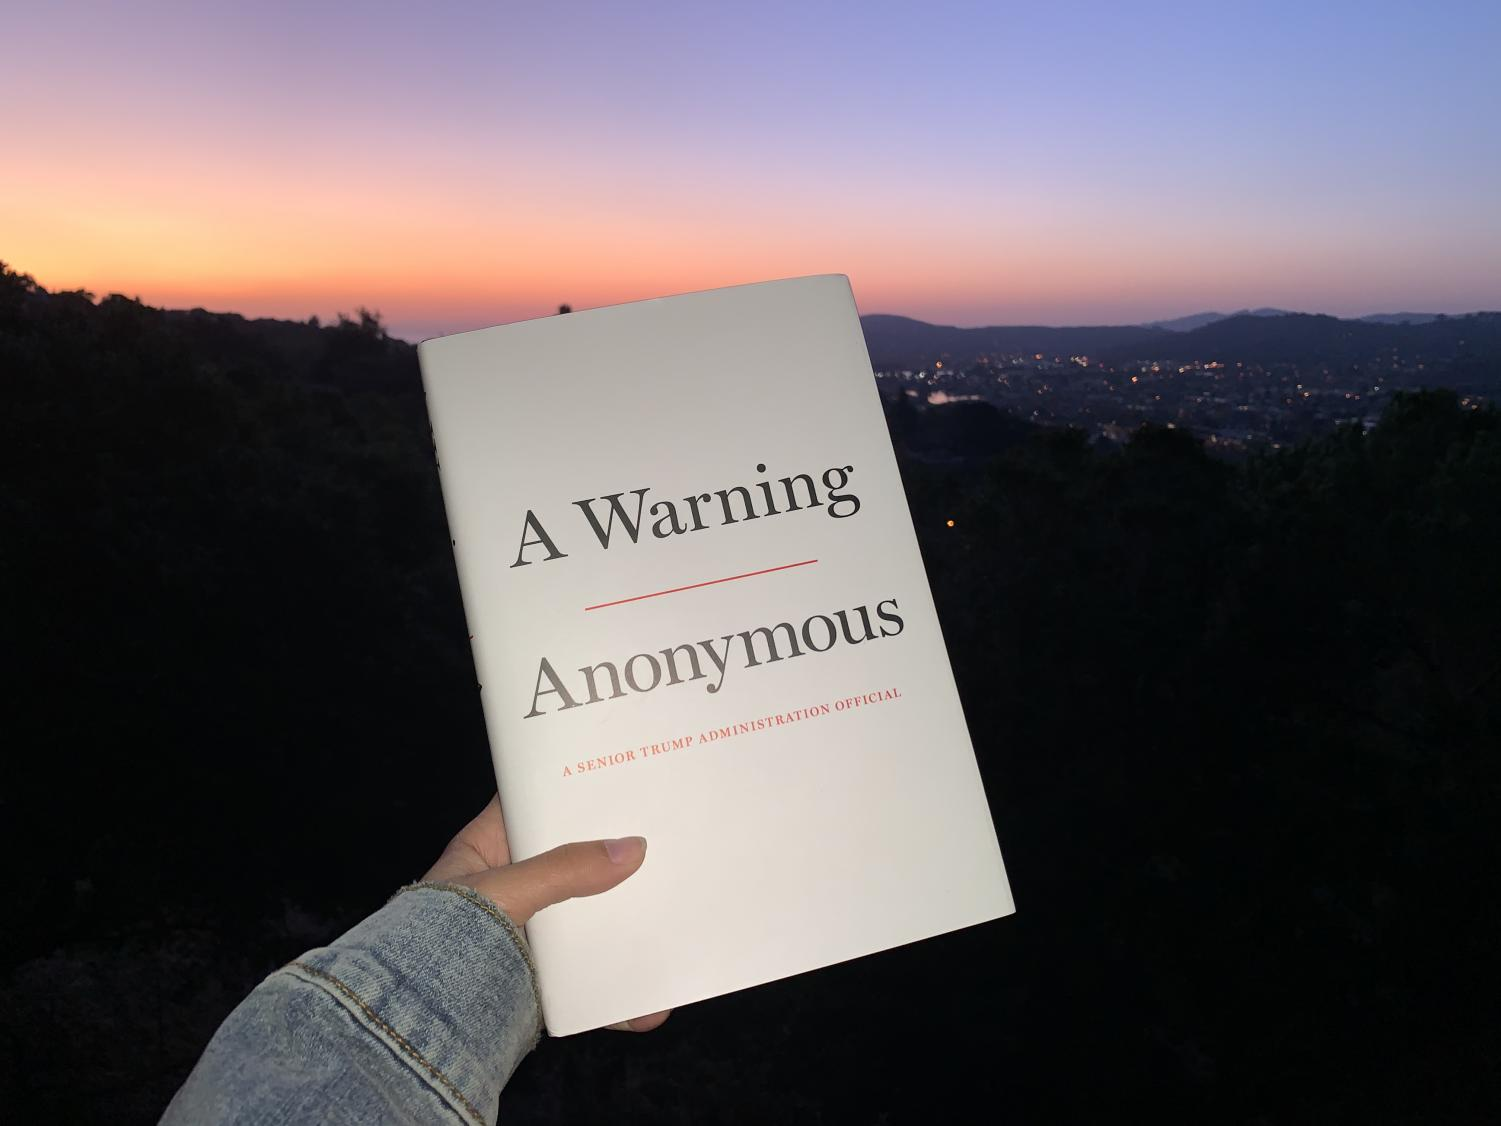 'A Warning' by Anonymous provides an easy read about our current political climate.